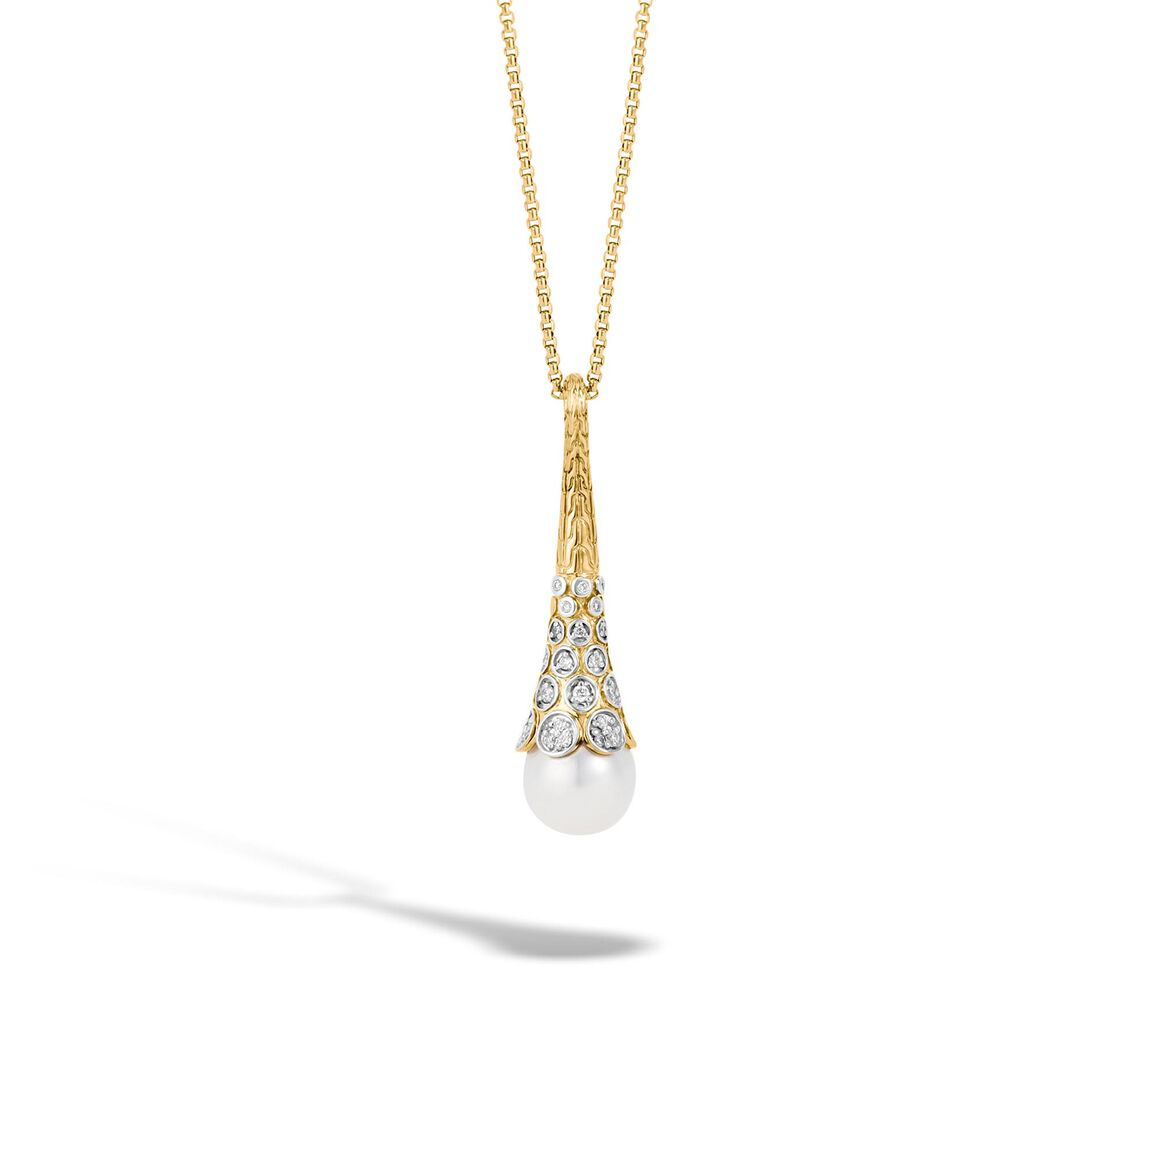 Dot Pendant Necklace in 18K Gold with 11MM Pearl,  Diamonds